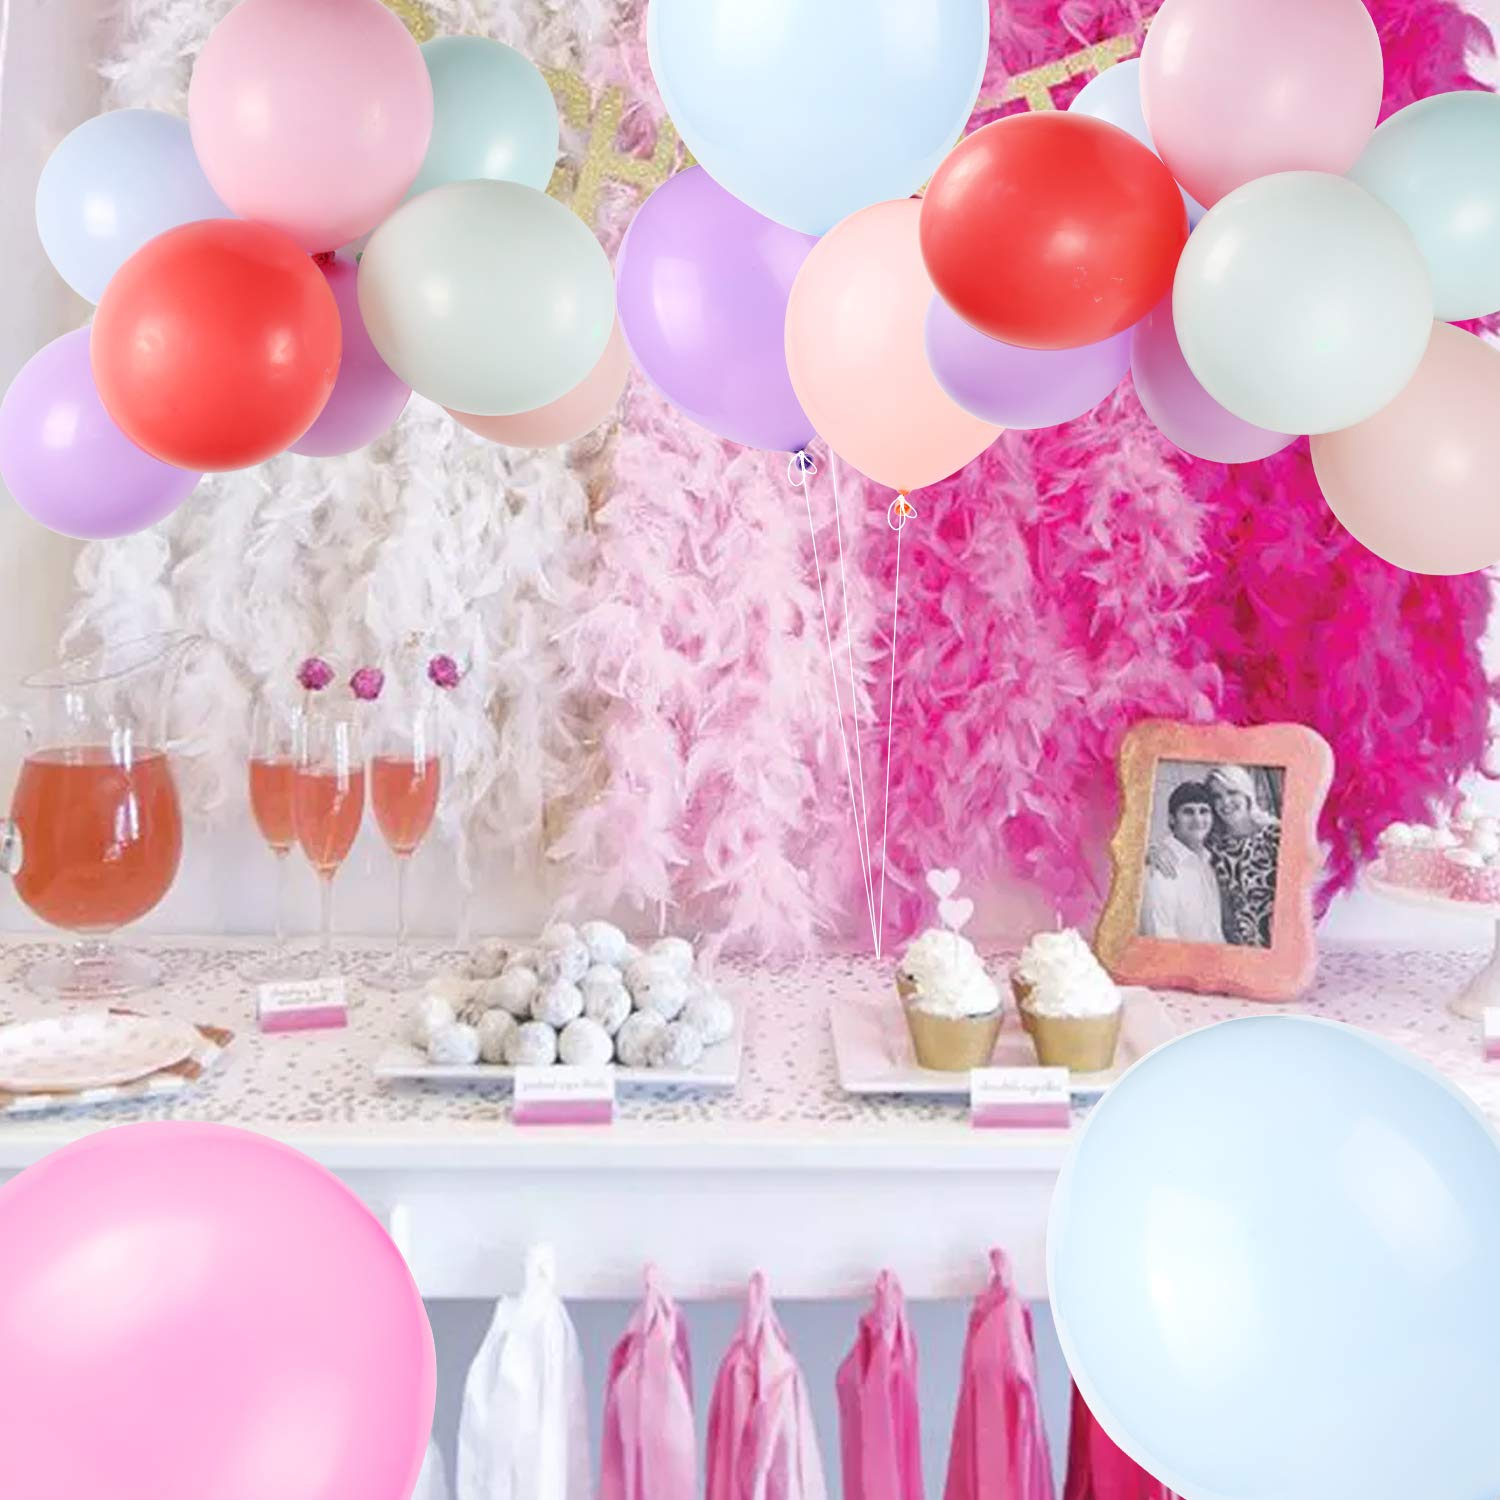 Konsait Bachelorette Party Balloons Pack of 30 Mixed White Pink Colorful Bachelorette Balloons Funny Rude Balloons for Party Supplies